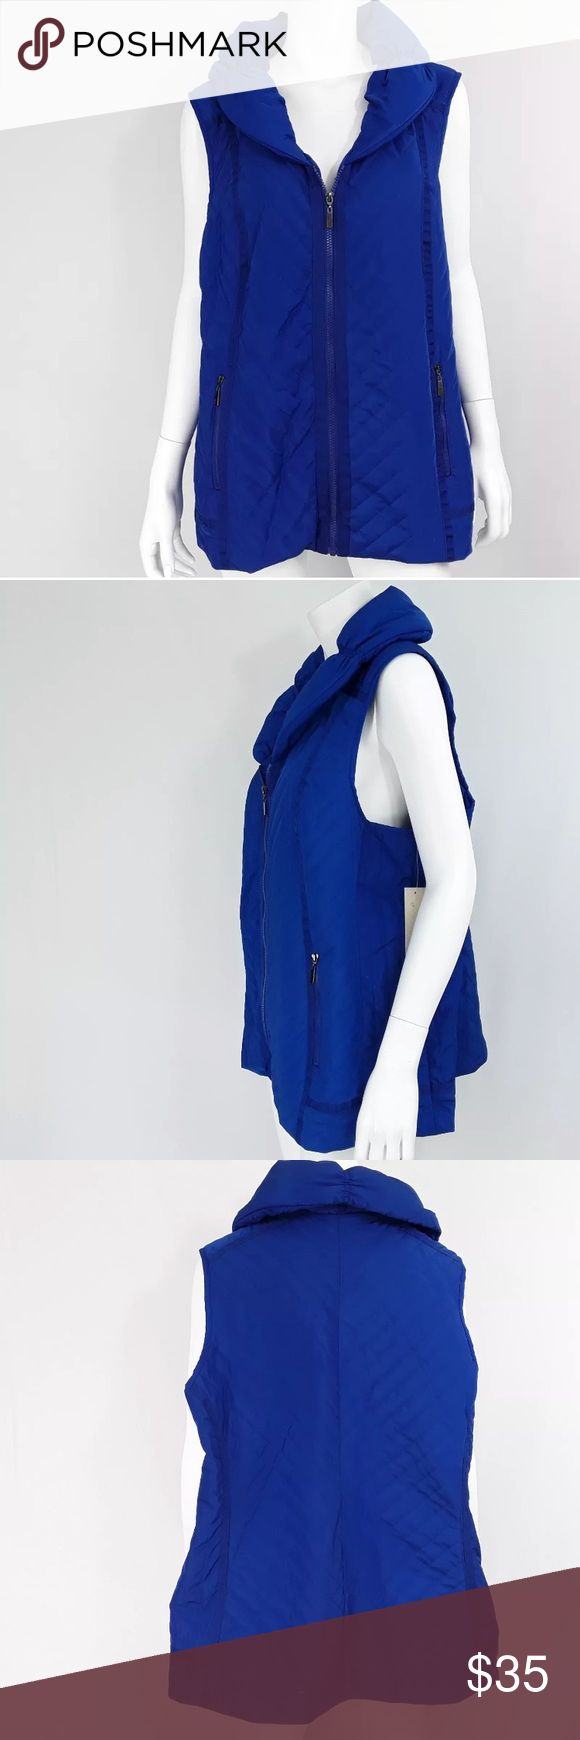 """Quilted Puffy Vest with Unique Collar Royal Blue Brand New with Tags, Original Price $88  Measurements taken laying flat:  Underarm to Underarm: 25""""  Shoulder to hem: 28.5"""" Laura Ashley Jackets & Coats Vests"""